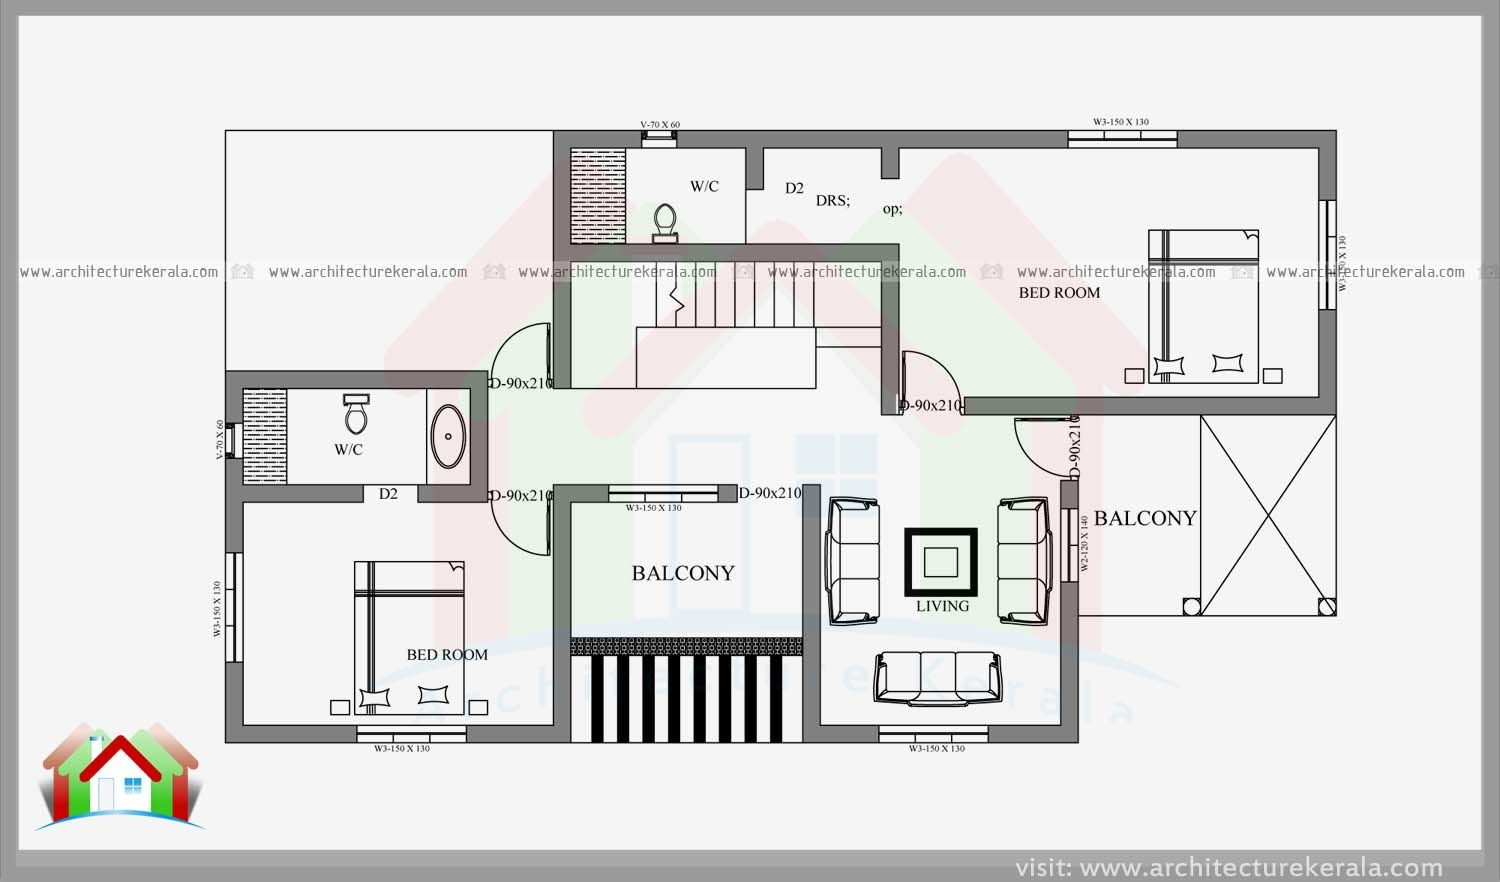 Double Storied Four Bedroom House Plan And Elevation Architecture Kerala Four Bedroom House Plans Bedroom House Plans House Plans